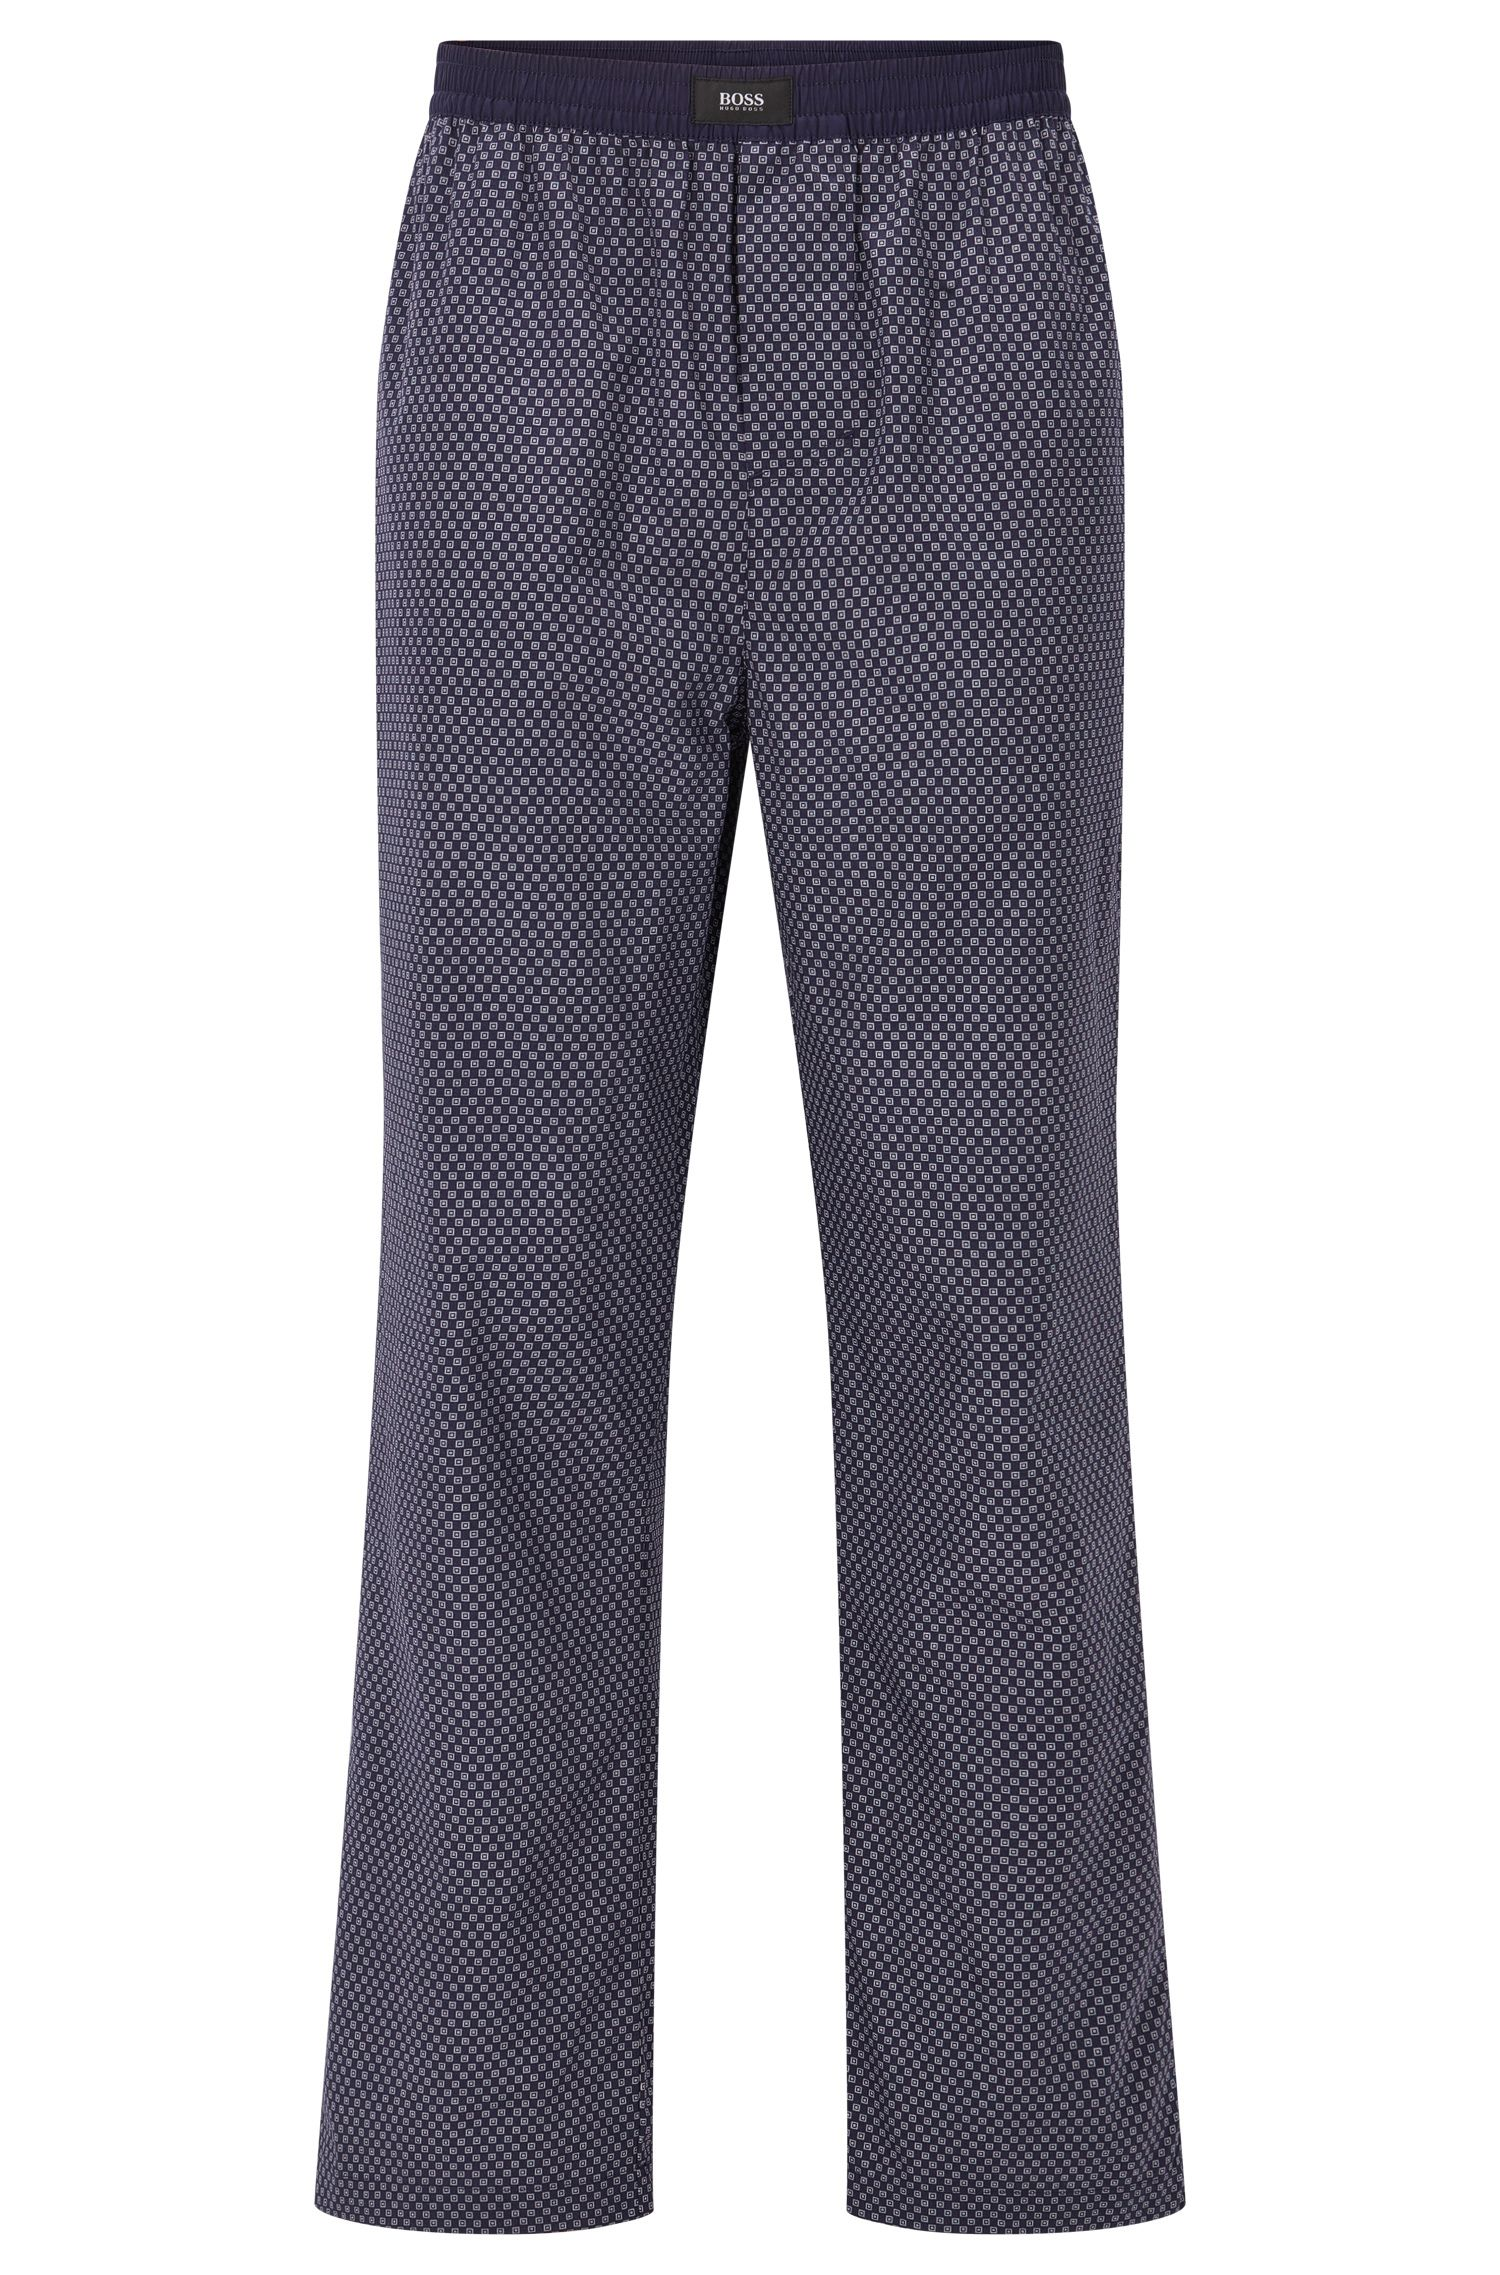 Pyjama bottoms in printed cotton